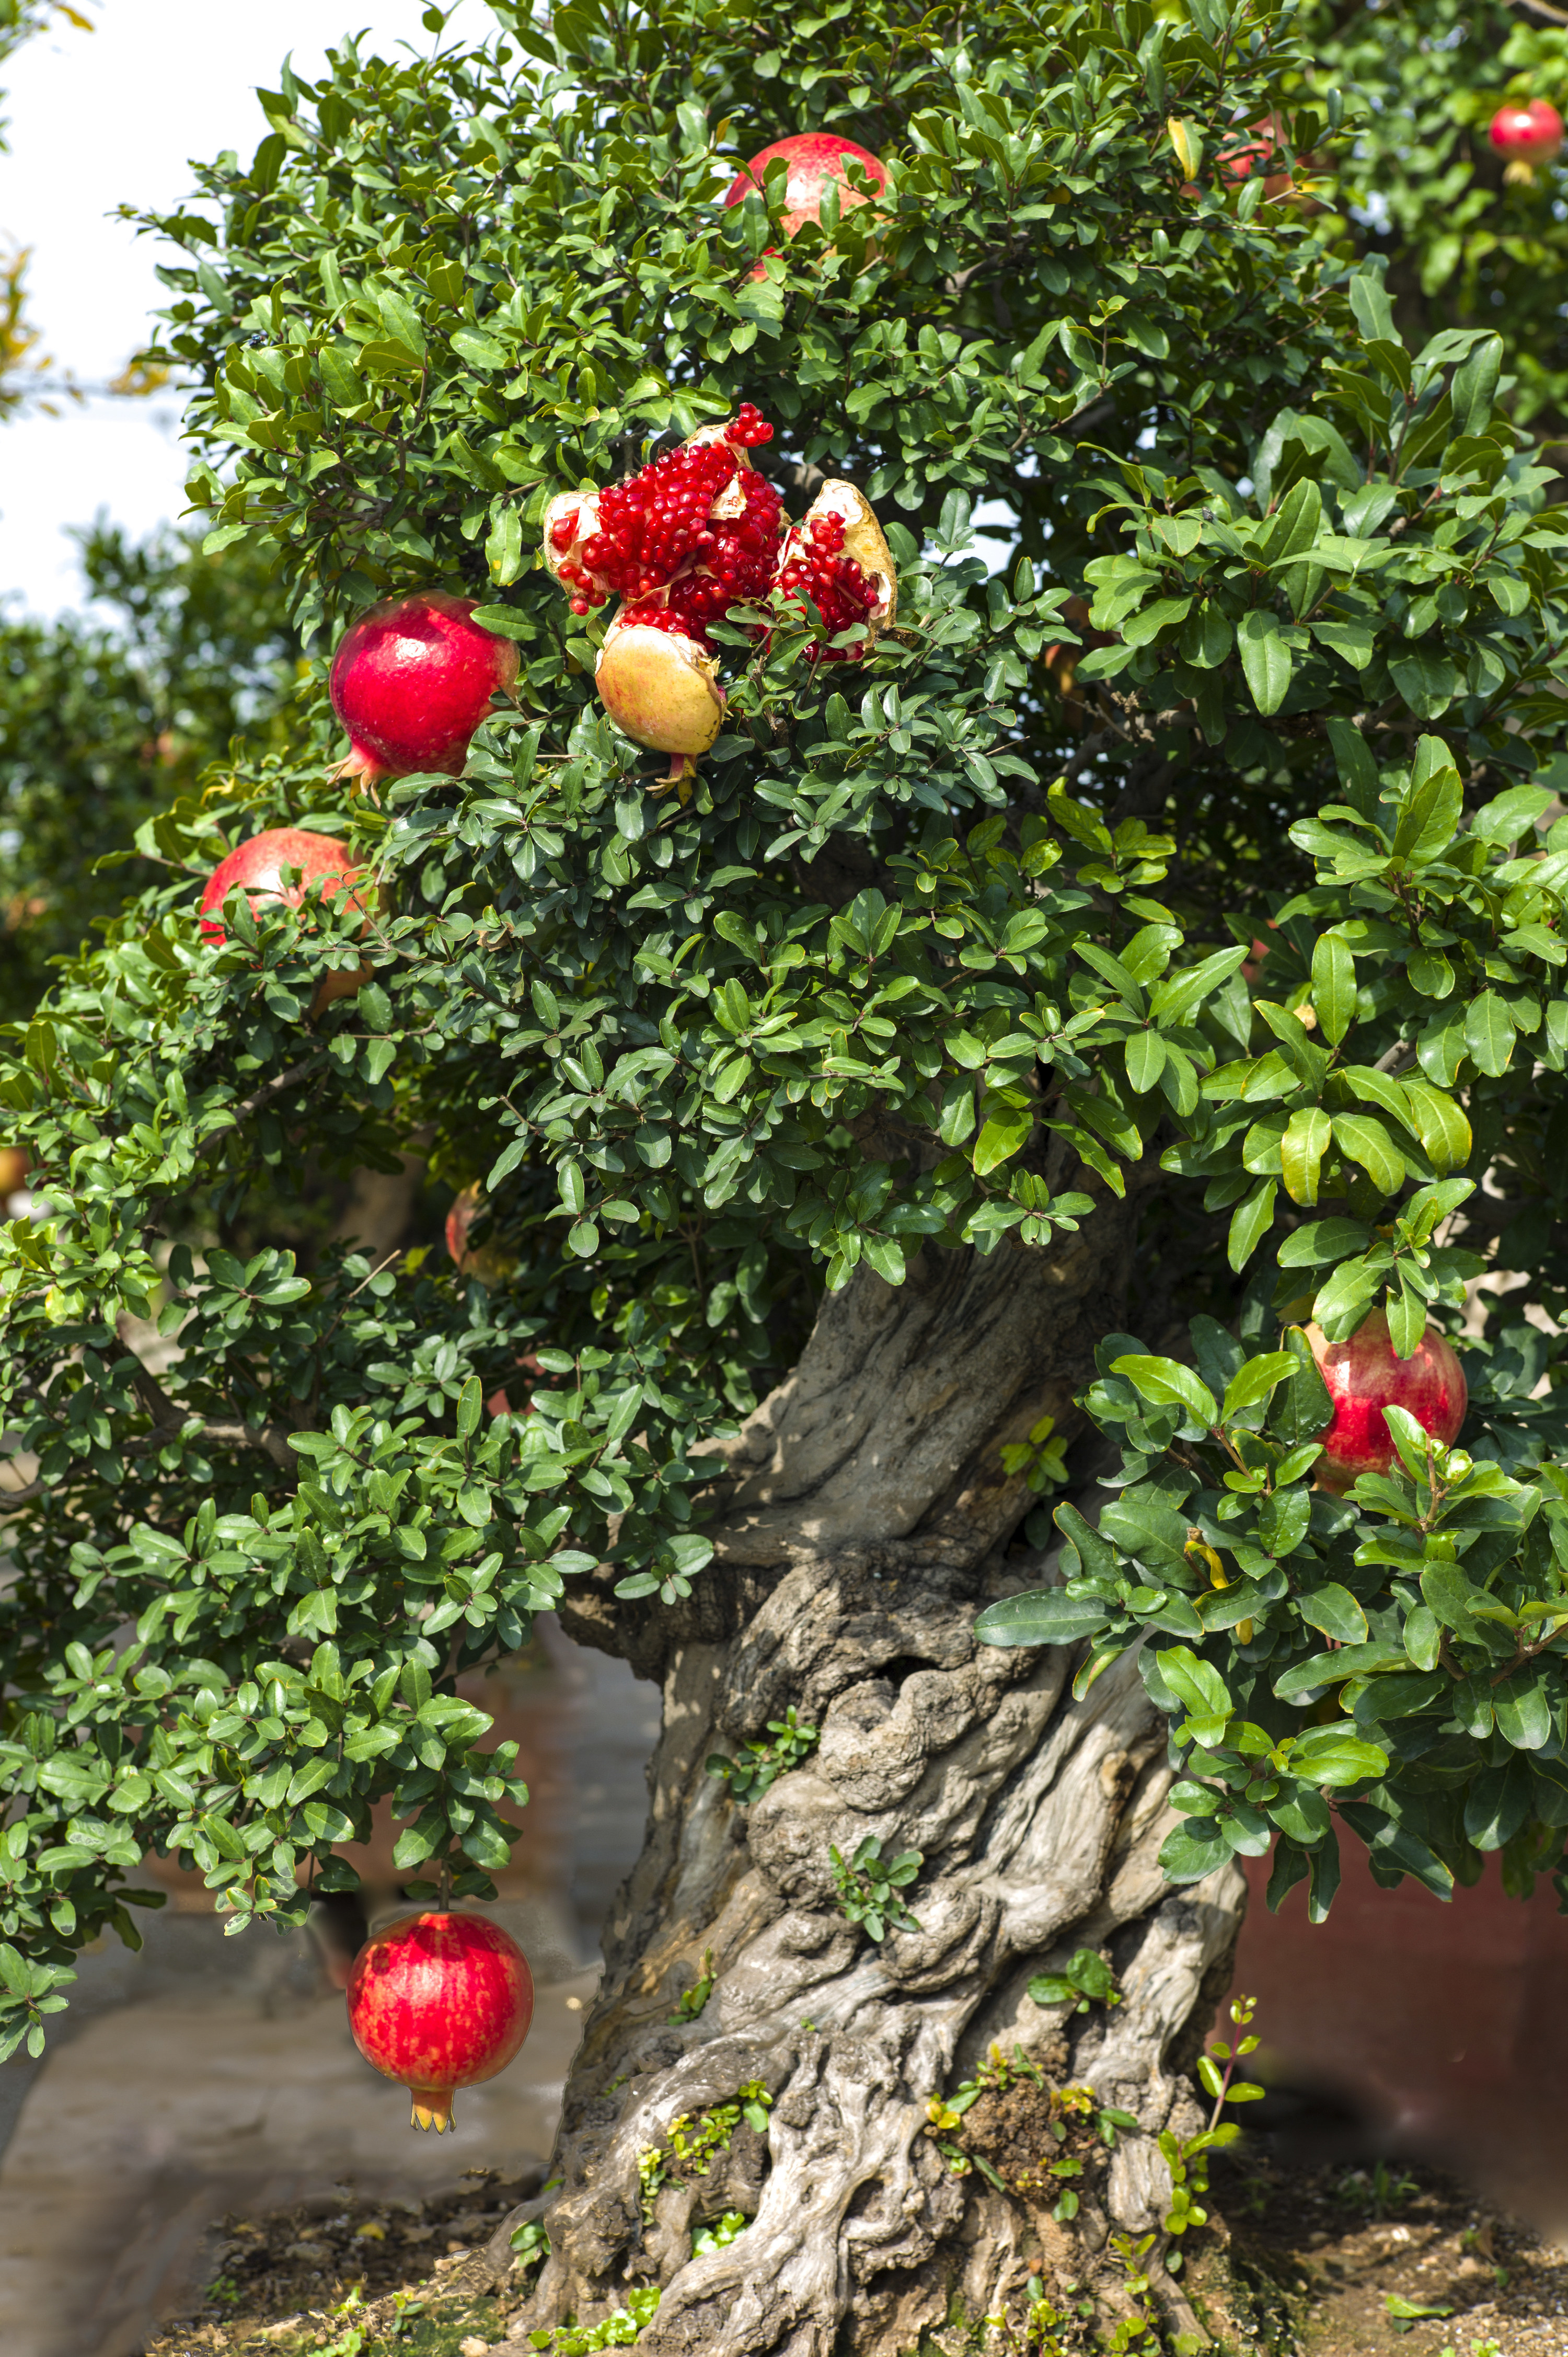 A pomegranate tree in bloom